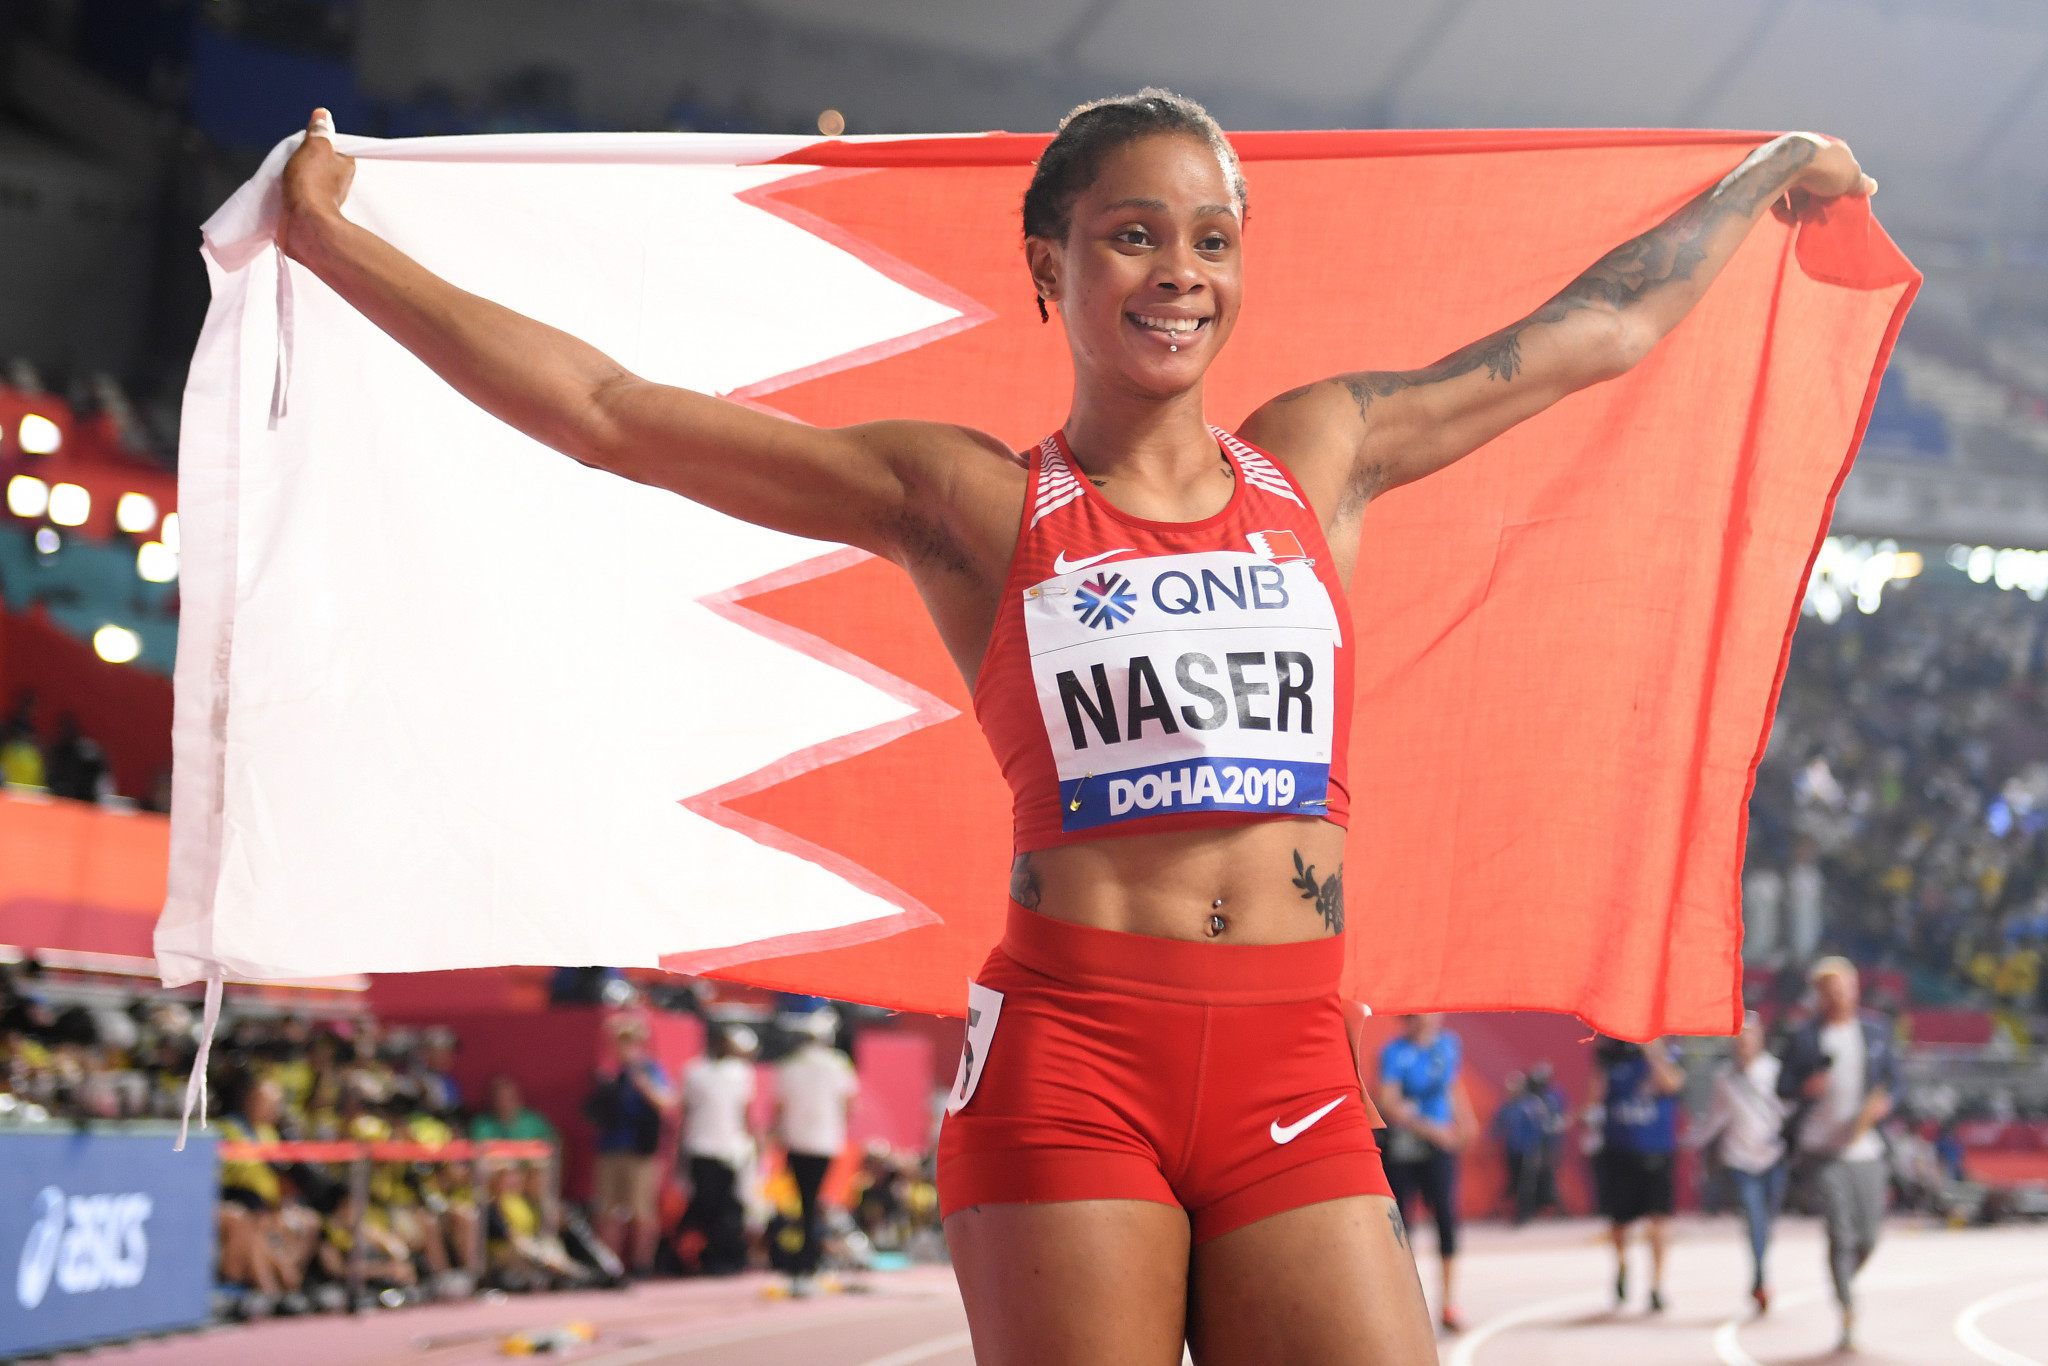 """Salwa Eid Naser said she """"would never cheat"""" in a video released on social media after she received a provisional suspension for whereabouts failures ©Getty Images"""